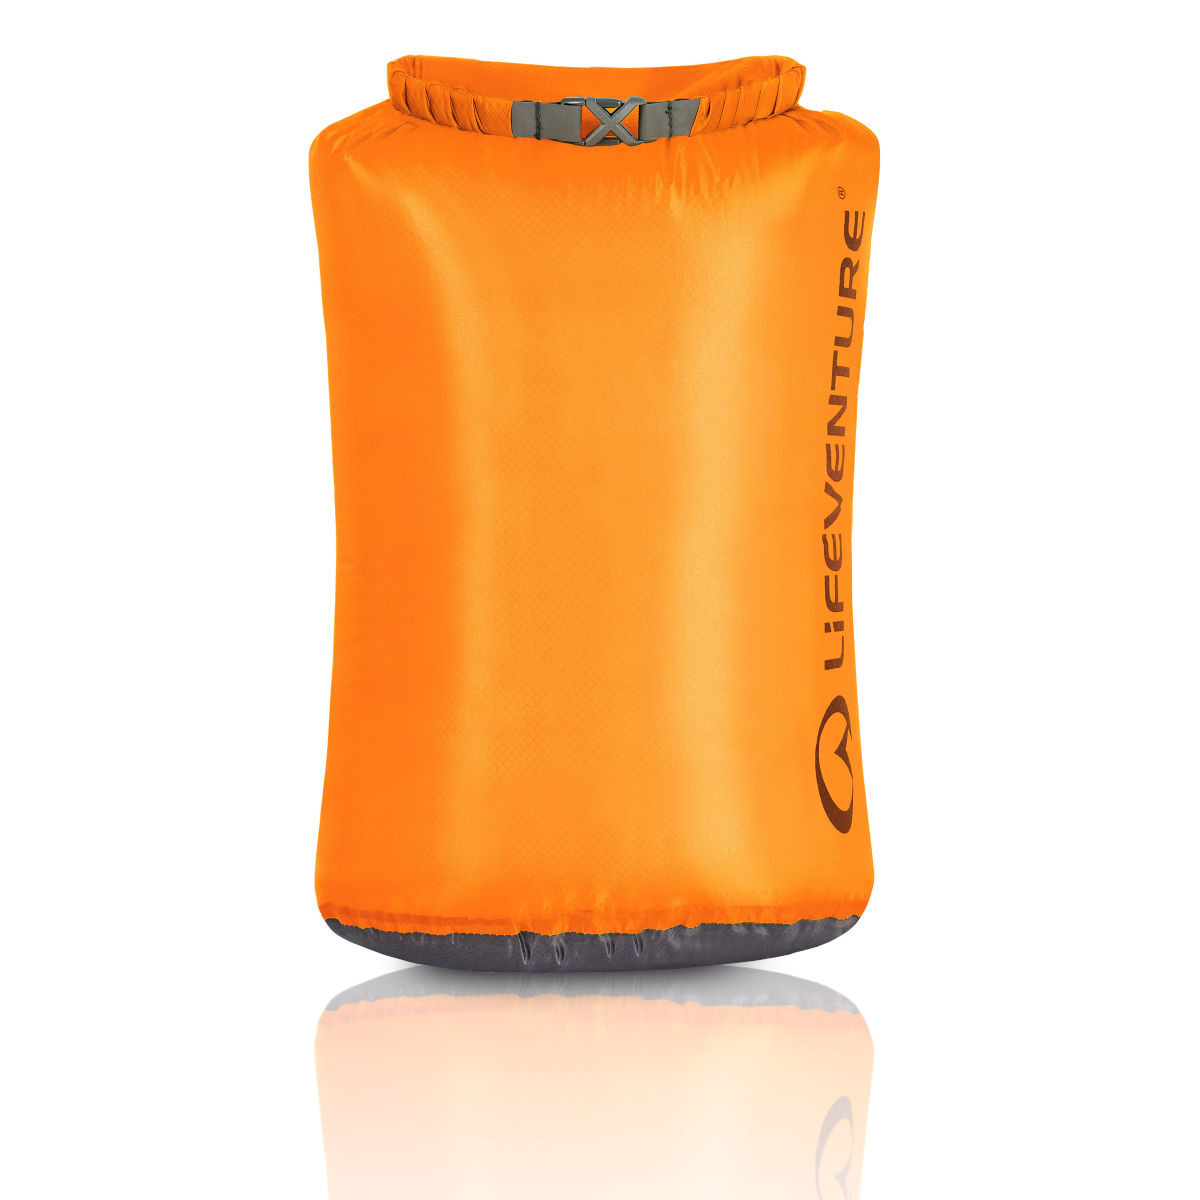 Bolsa impermeable Lifeventure Ultralight (15 litros) - Bolsas estancas